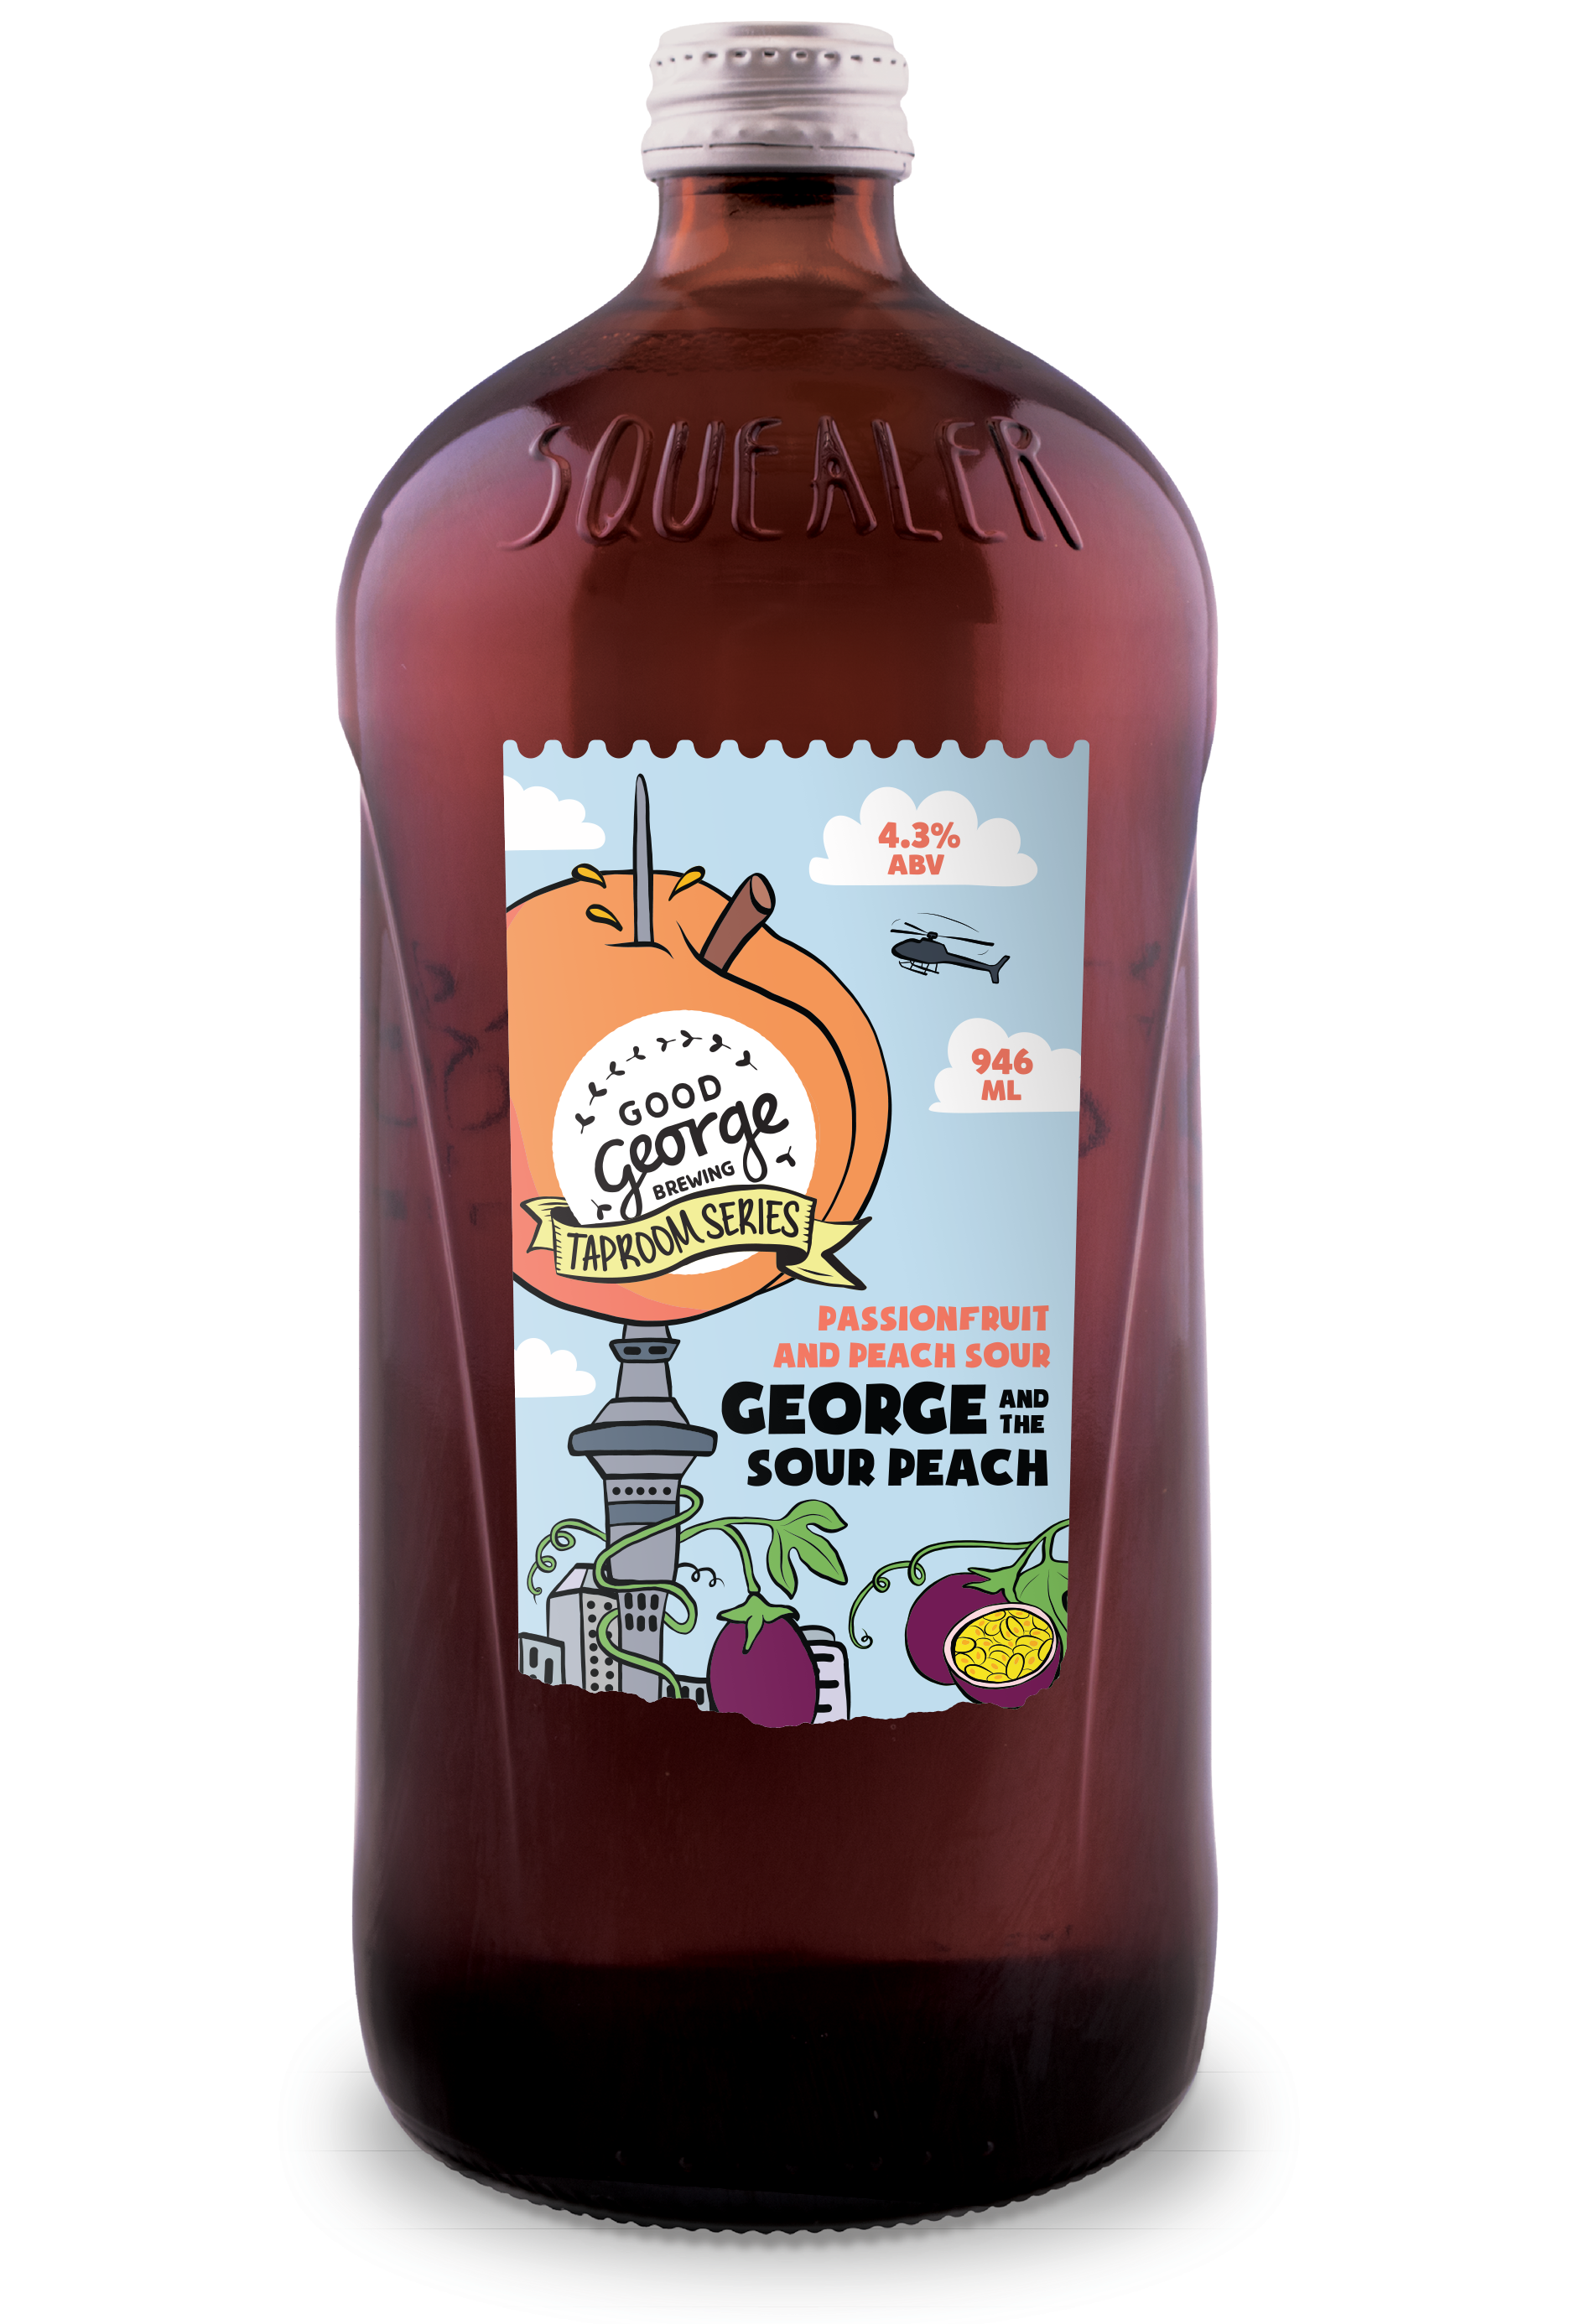 Good George Nectar of the Gods Squealer